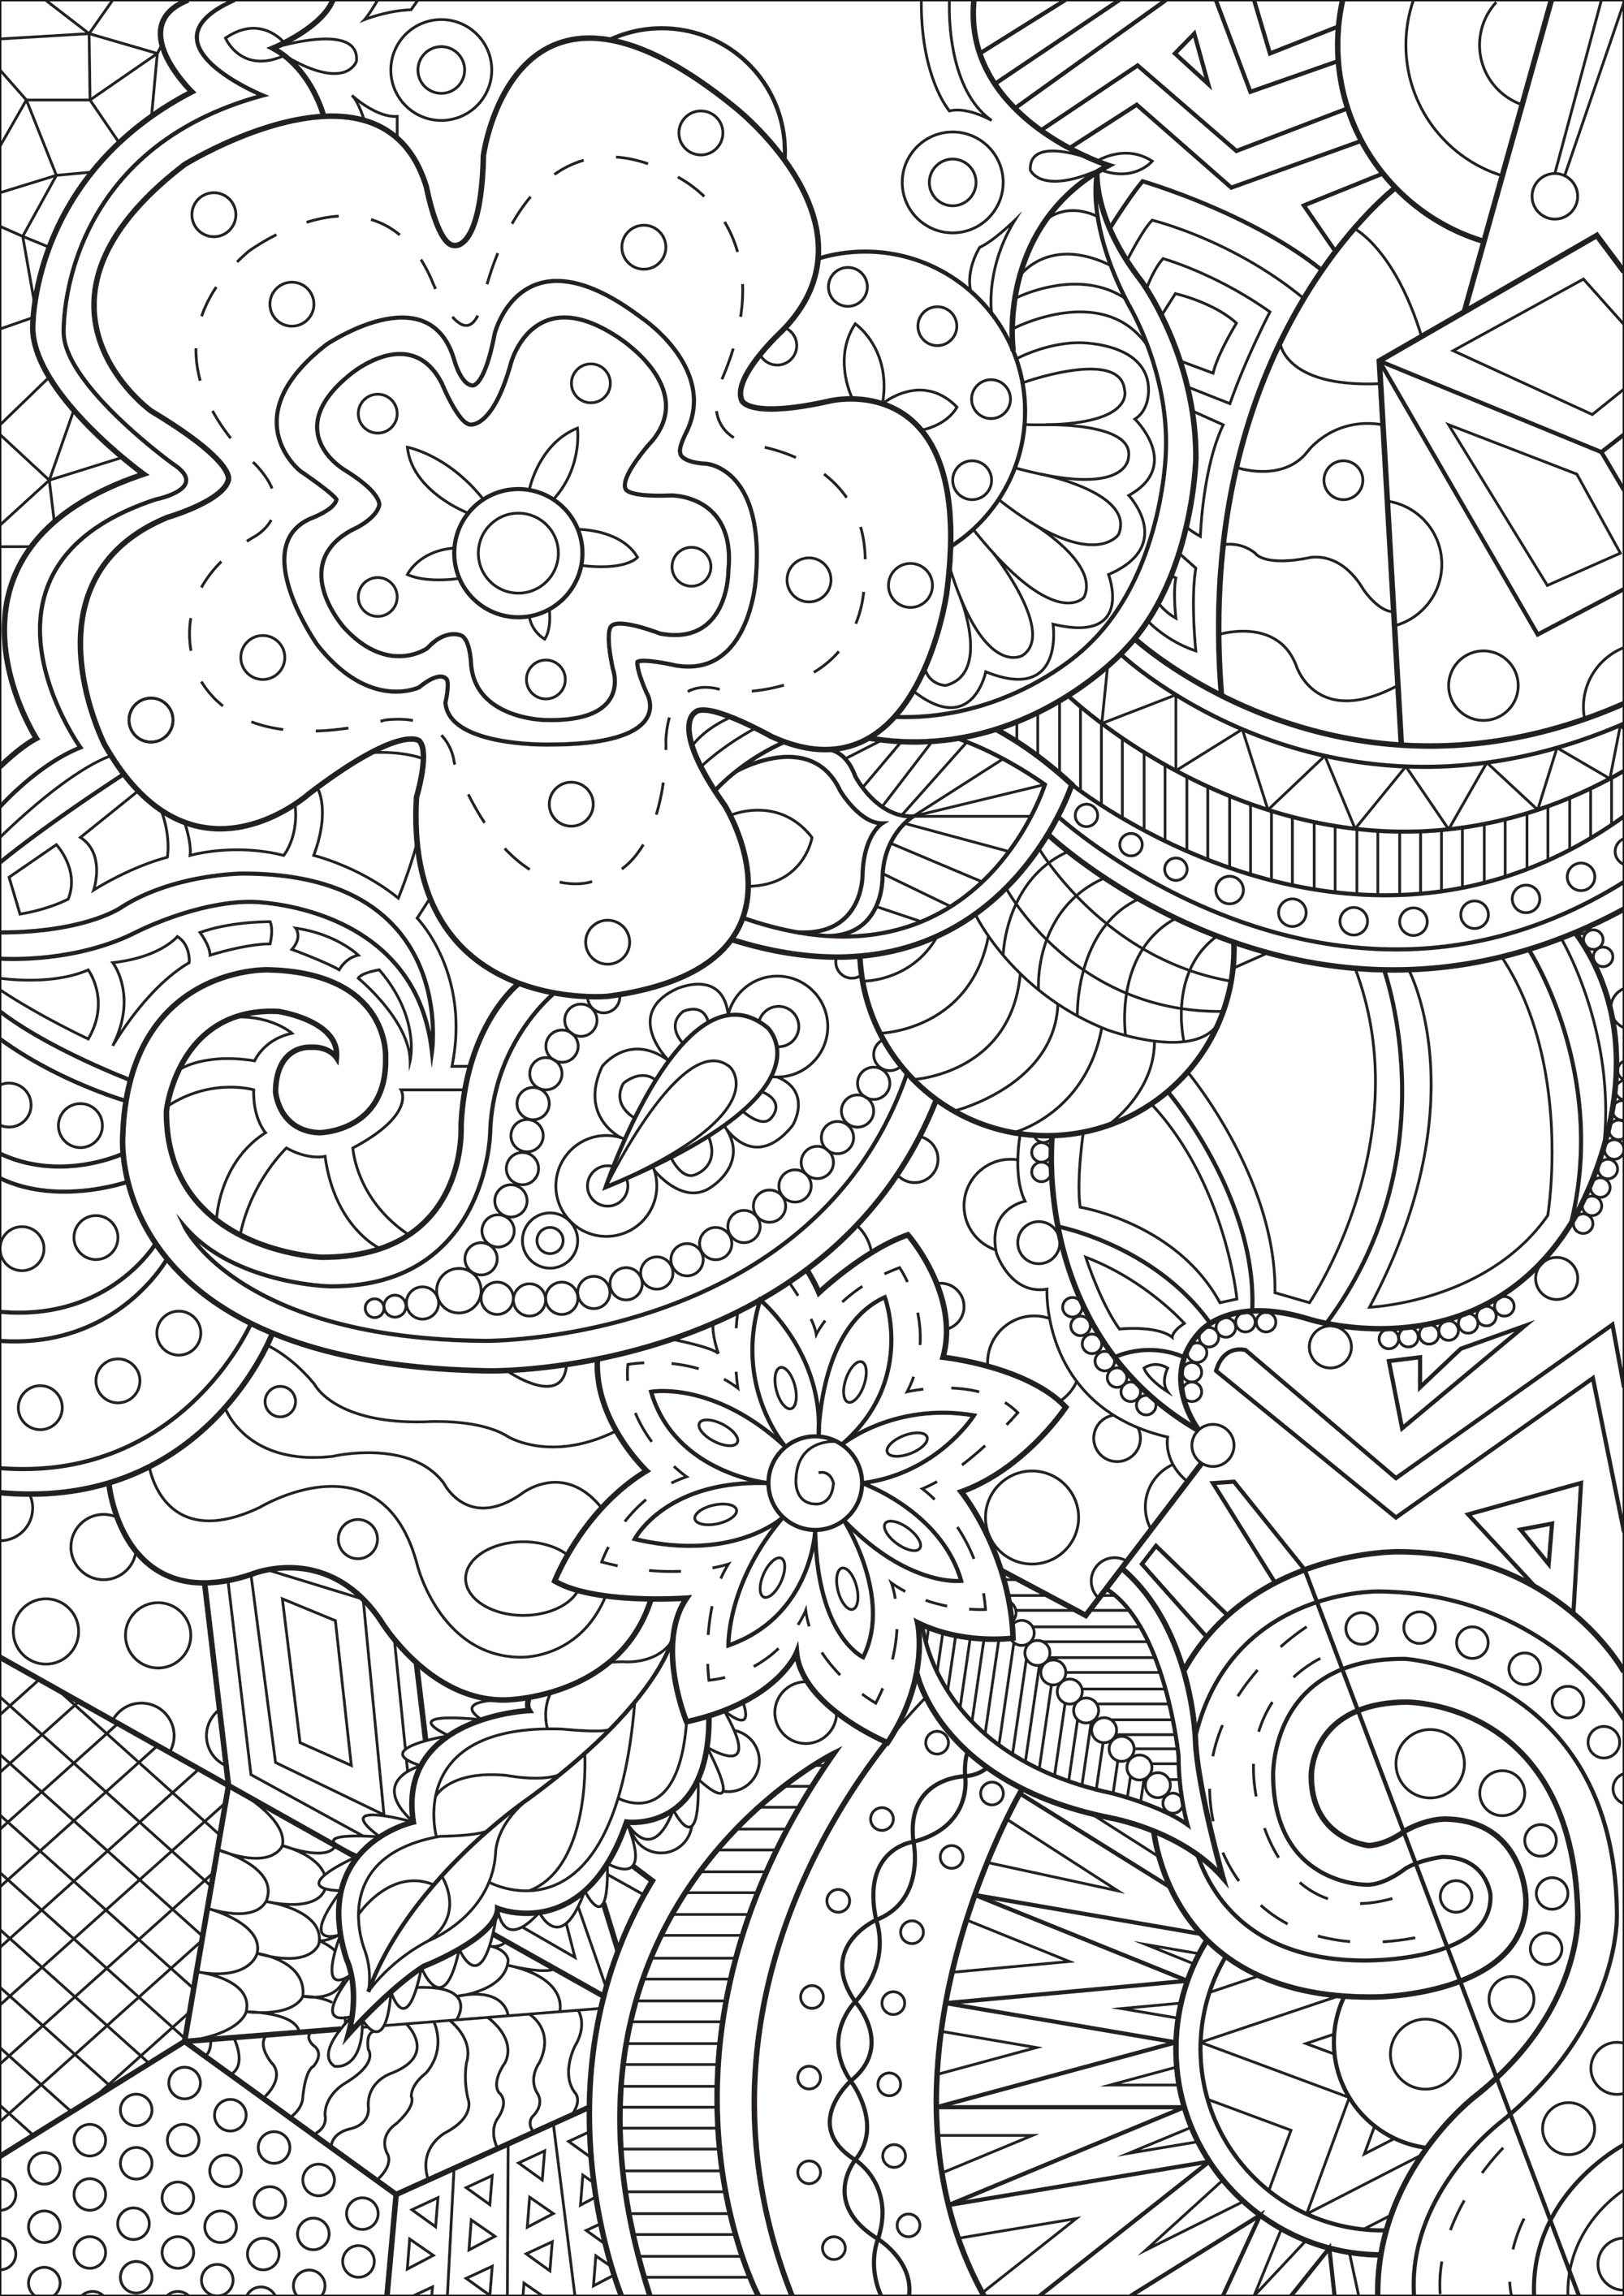 Original Design with beautiful flowers and abstract shapes intertwined